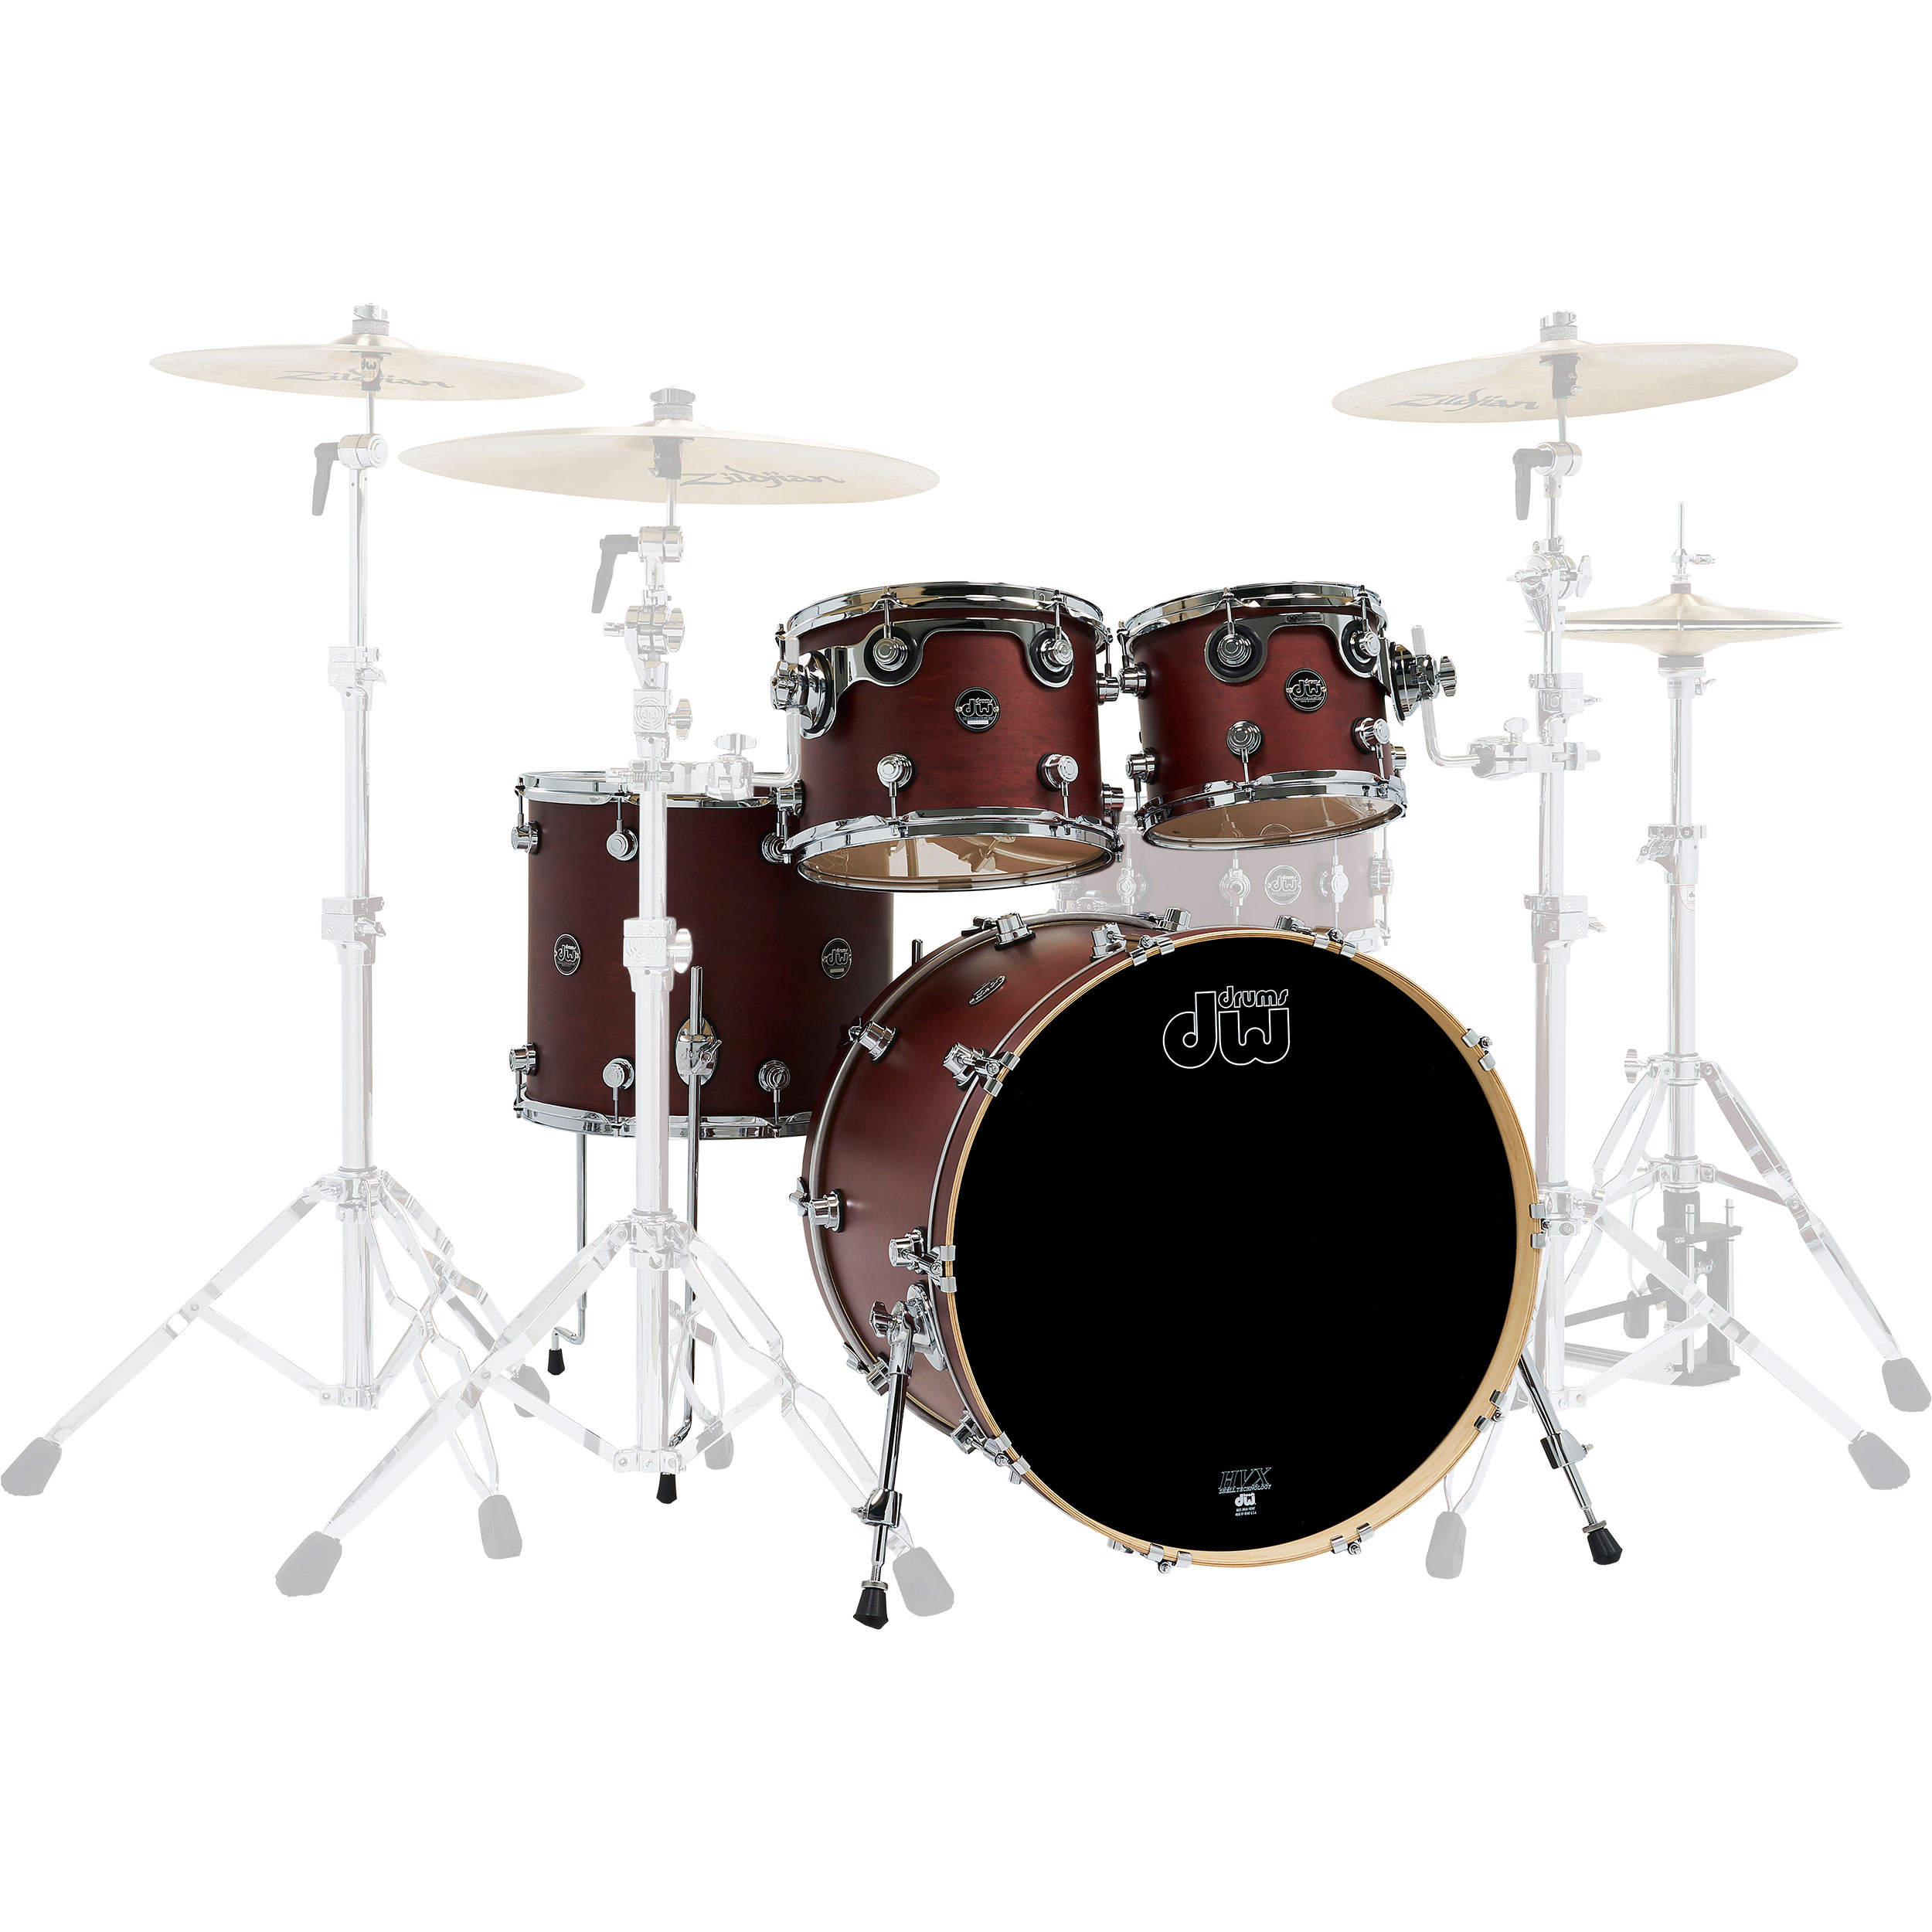 "DW Performance 4-Piece Drum Set Shell Pack (22"" Bass, 10/12/16"" Toms) in Tobacco Stain"